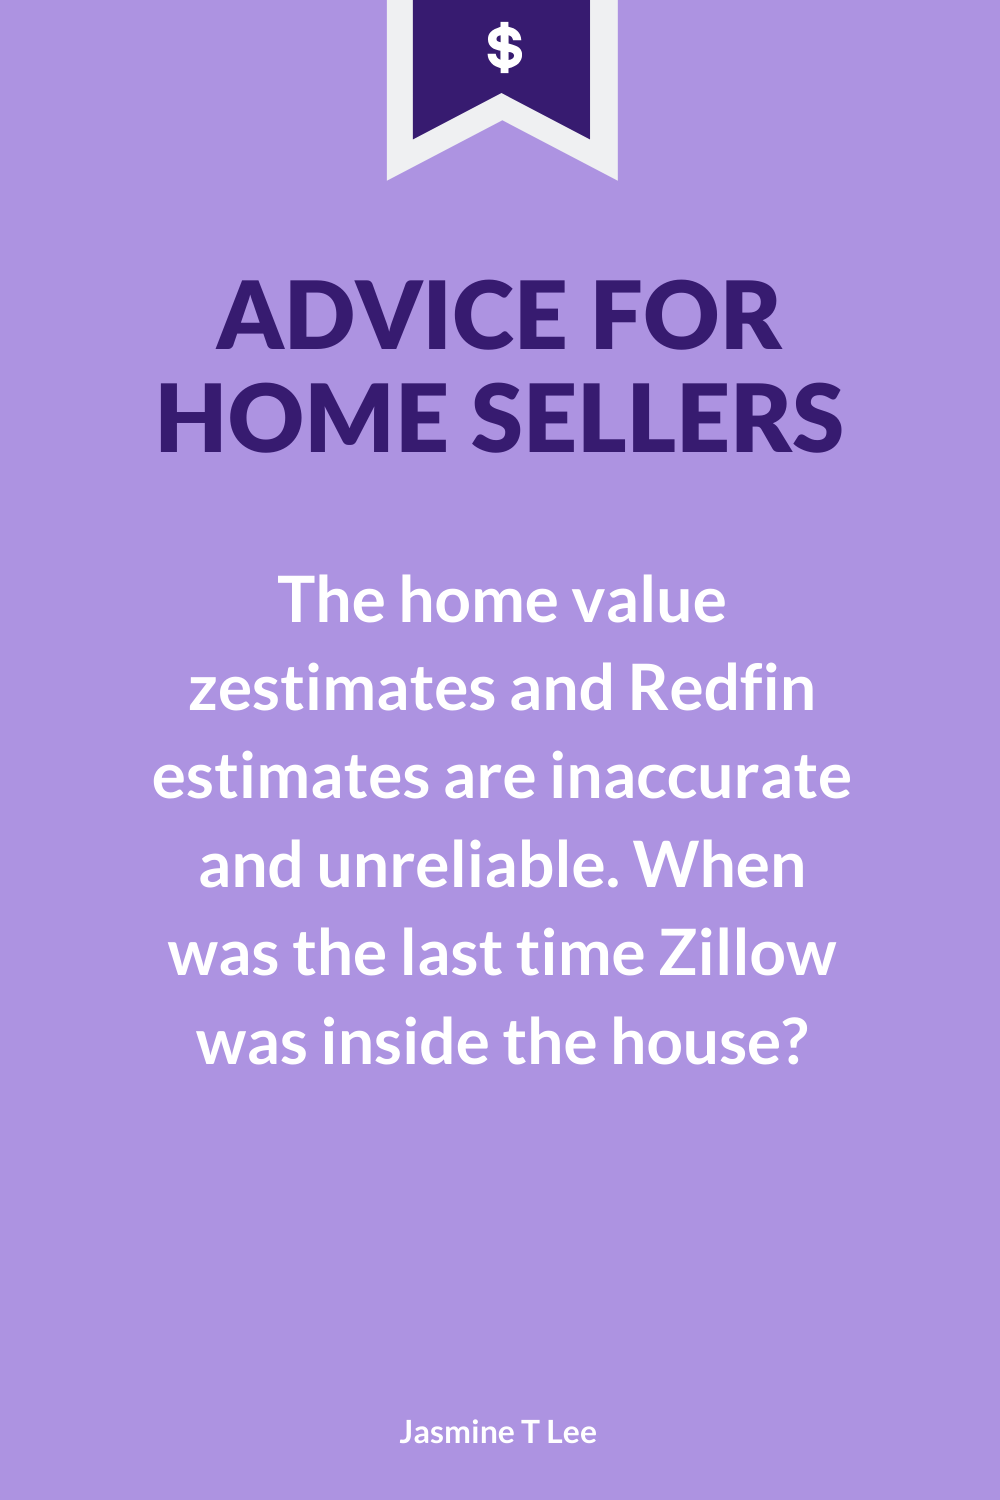 Advice For Home Sellers Zestimates Aren T Accurate Home Estimate House Jasmine Advice